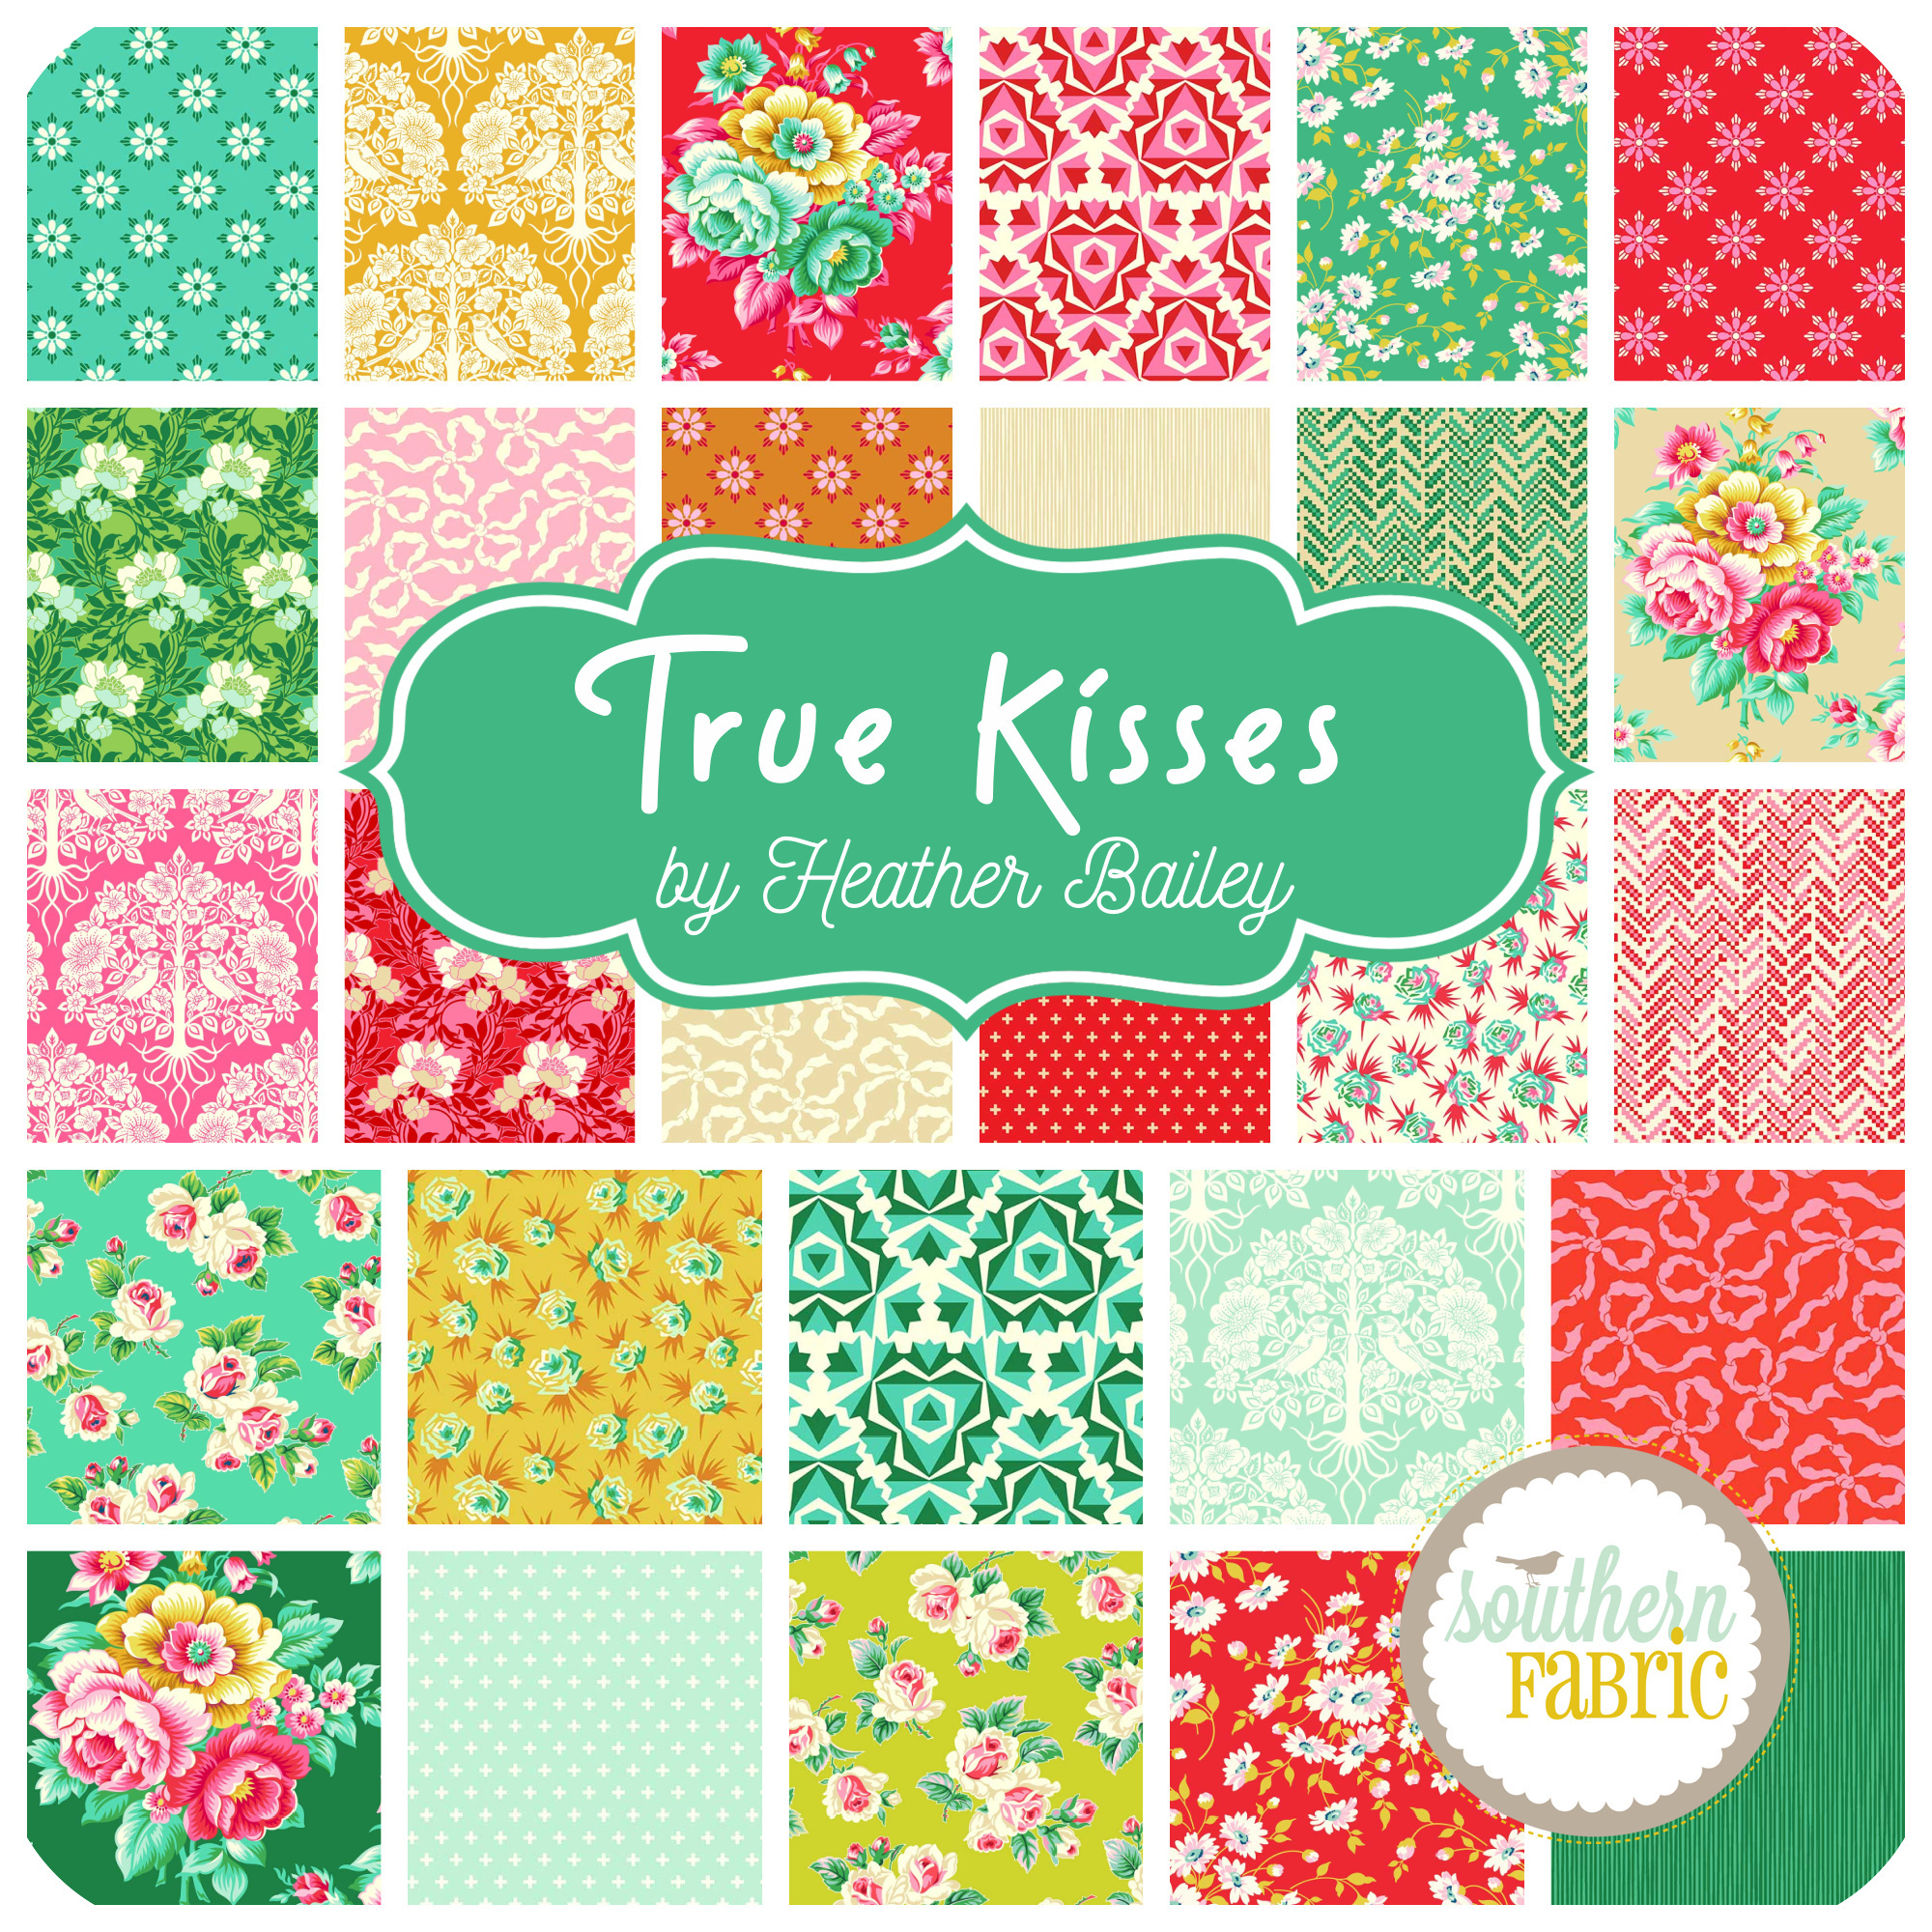 True Kisses by Heather Bailey